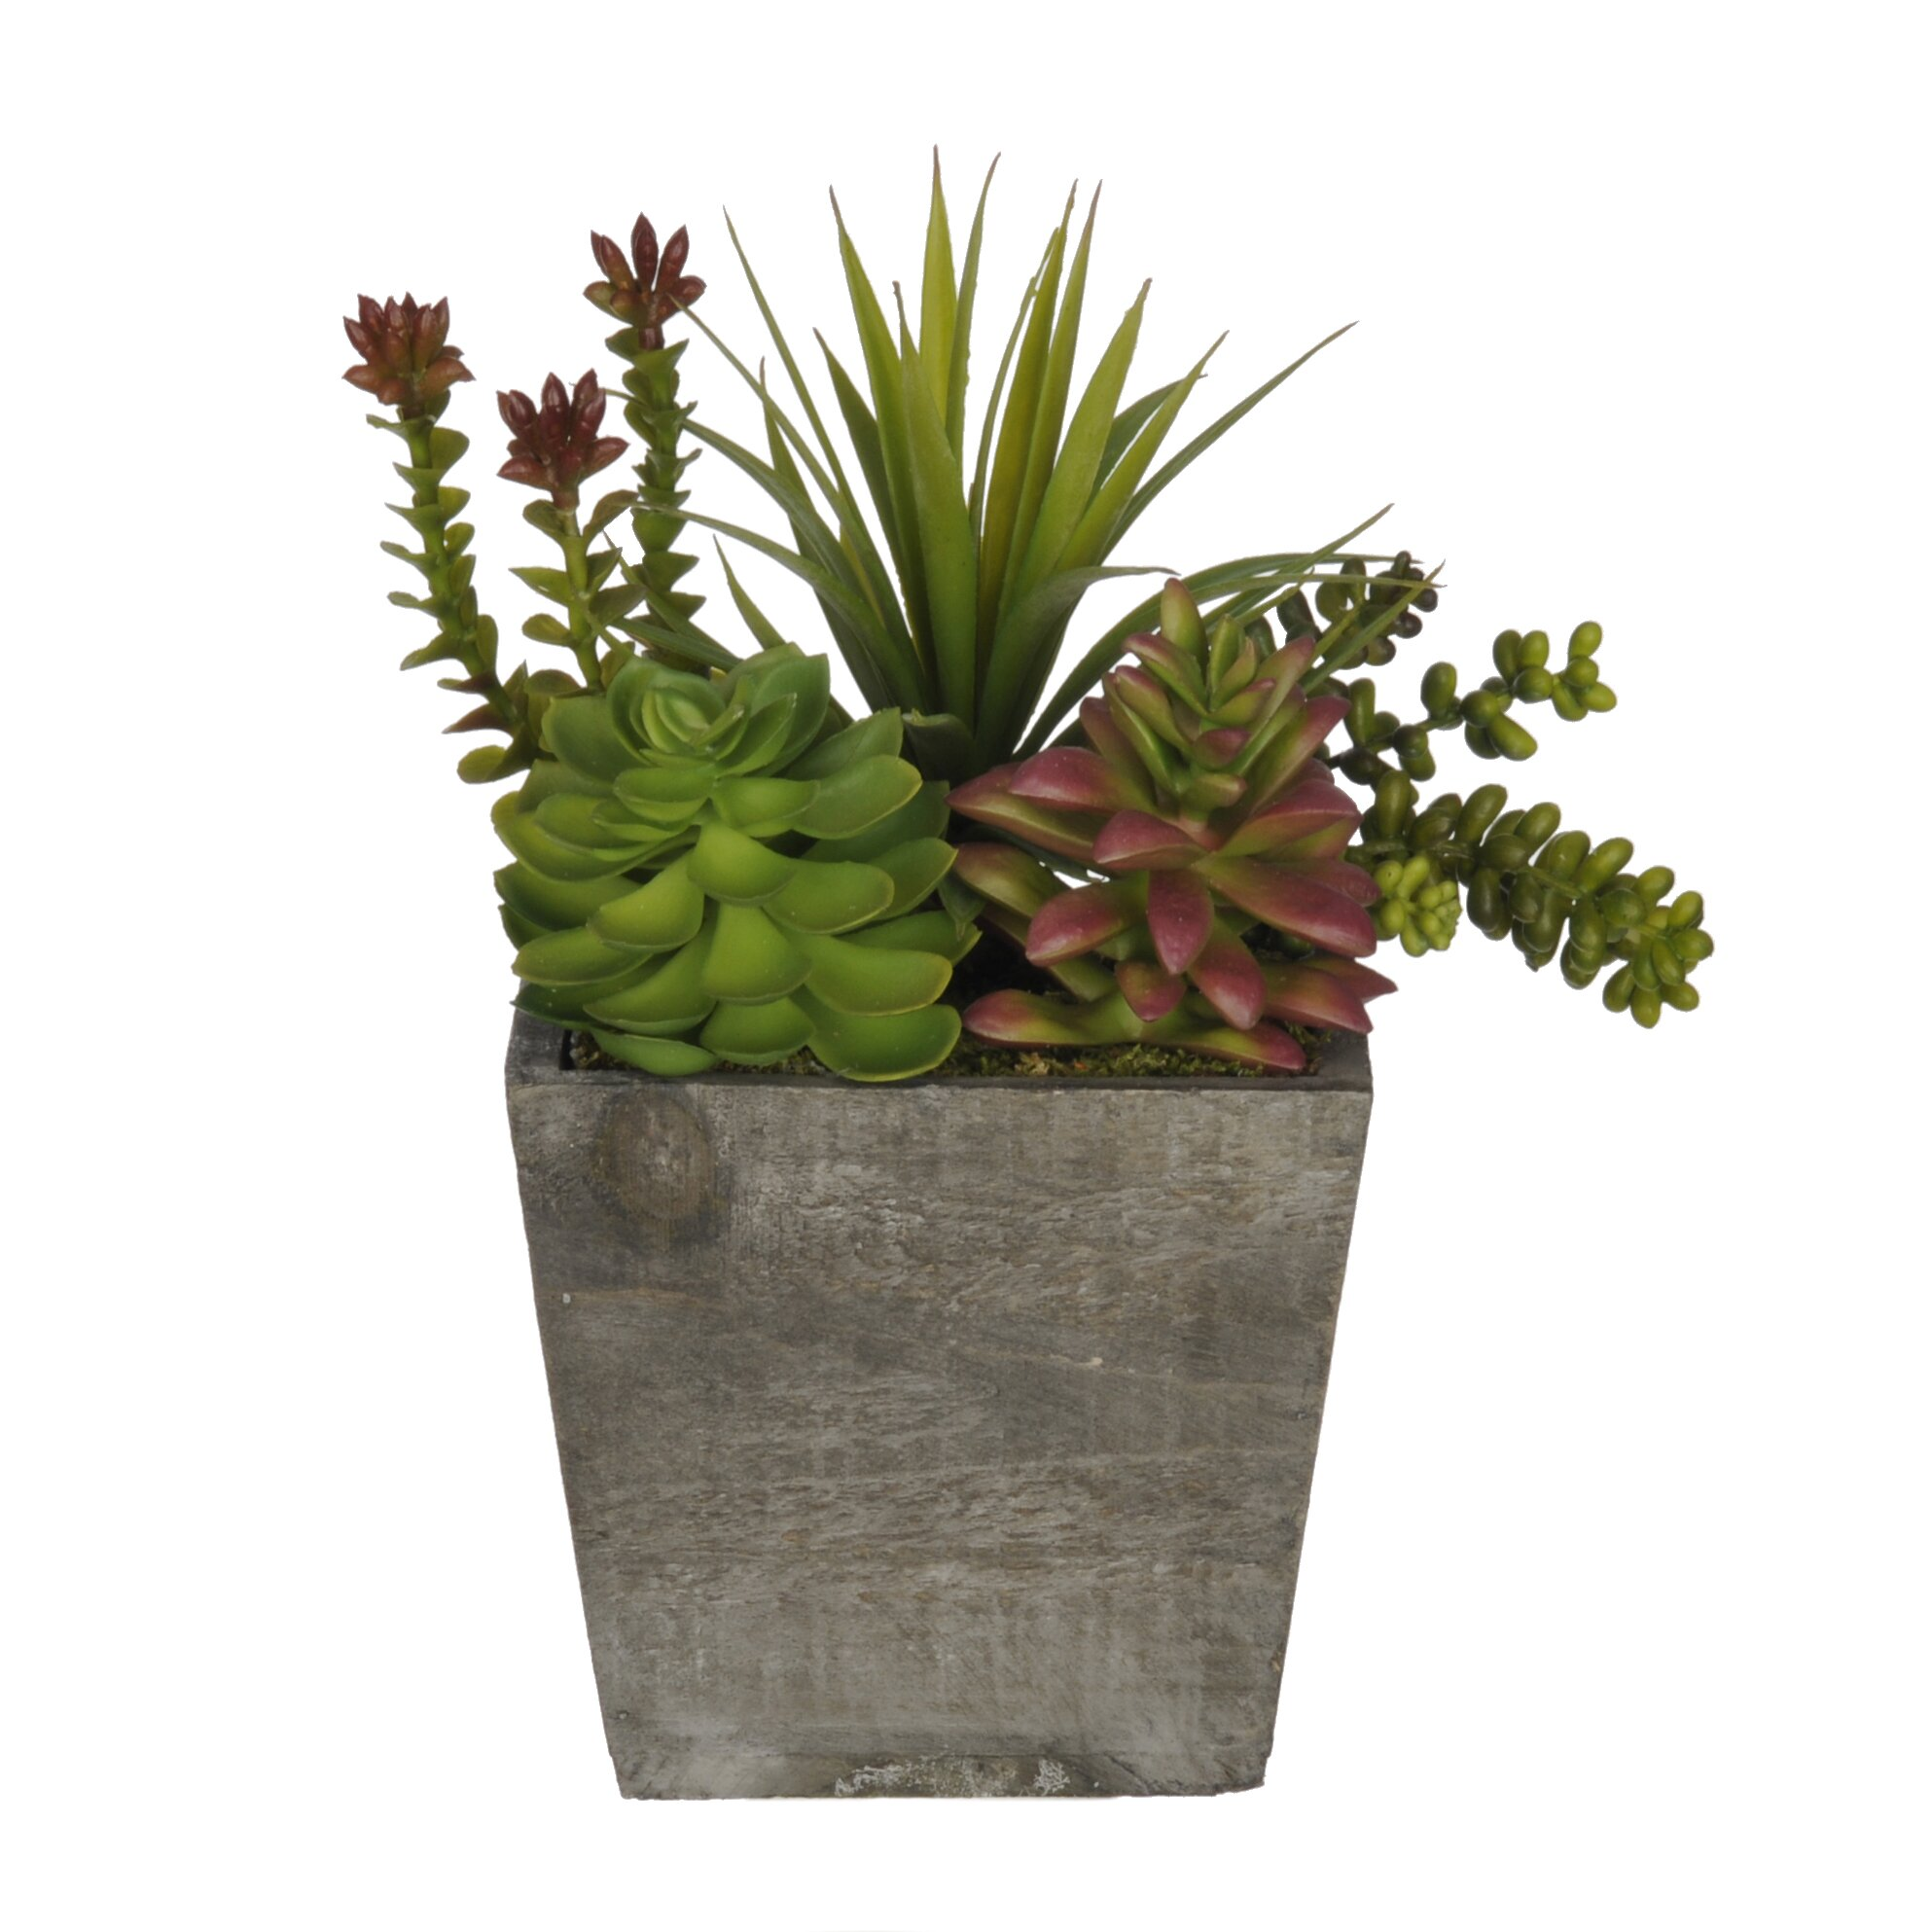 Image Result For Accents For Home And Gardena